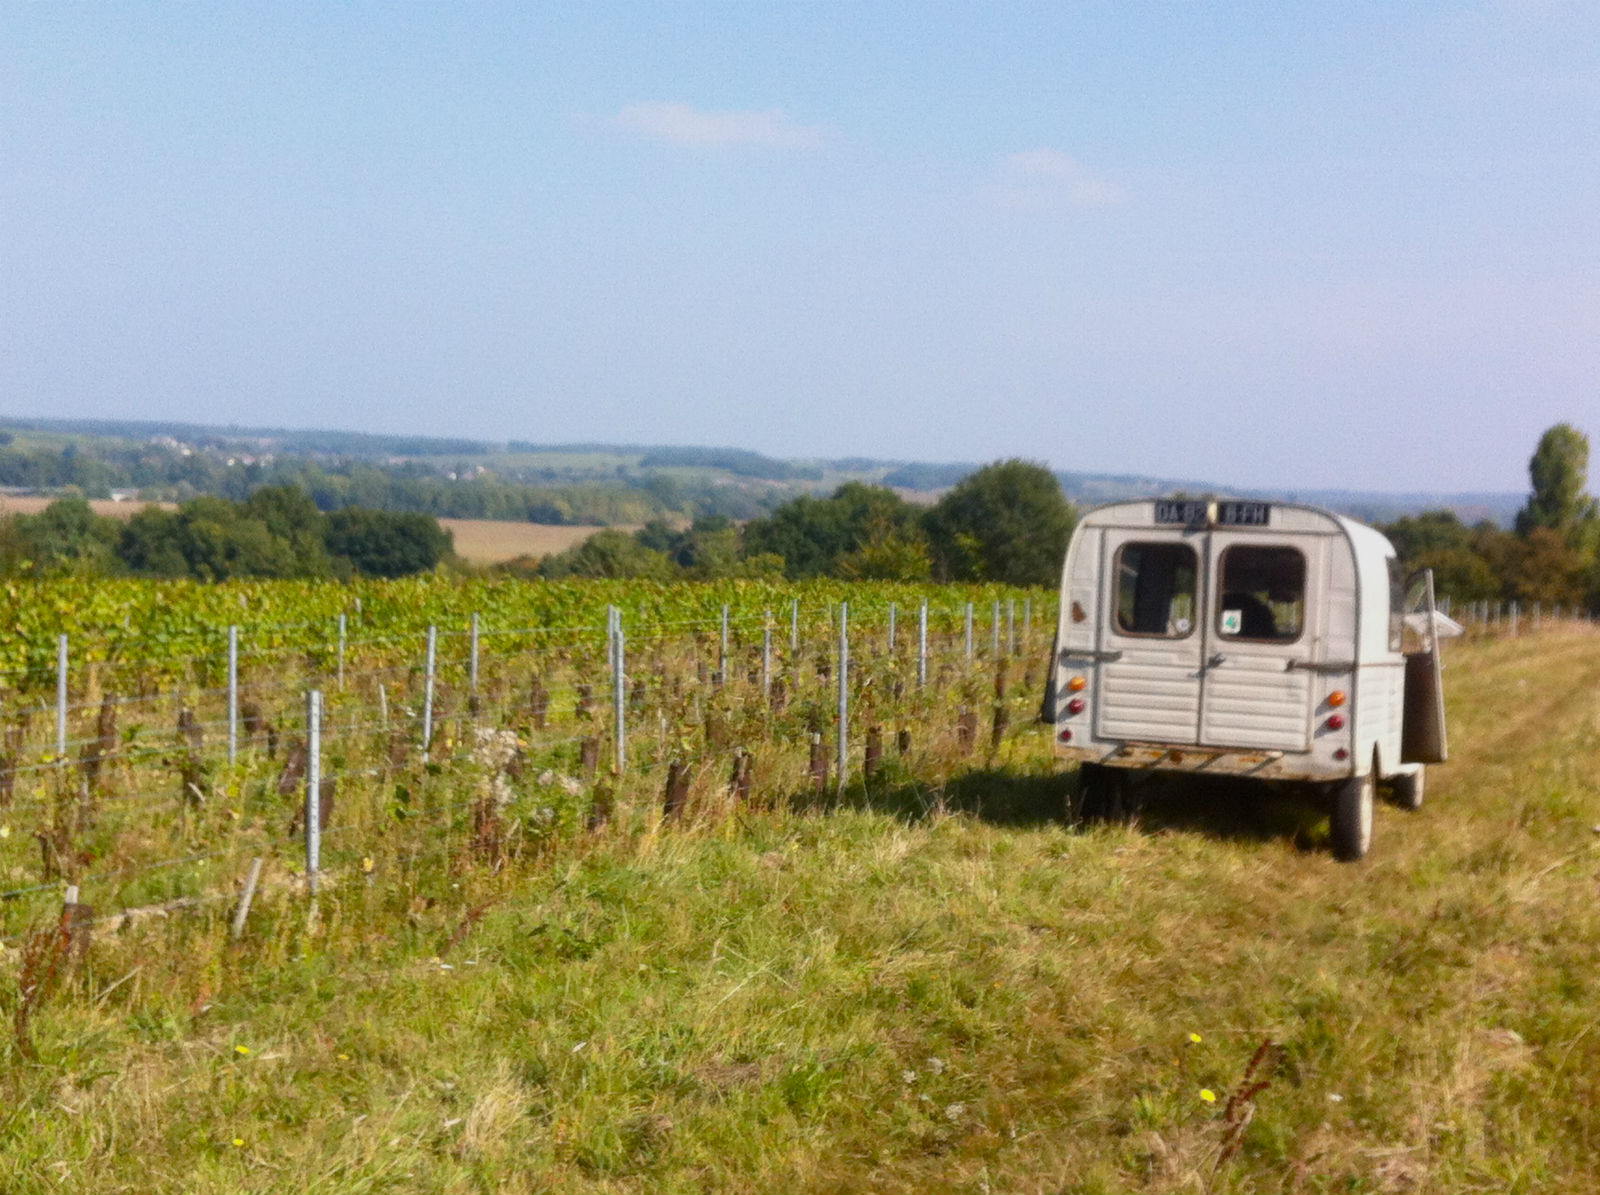 HiP Paris blog. Experiencing the wine harvest in France. A hands-on French experience.